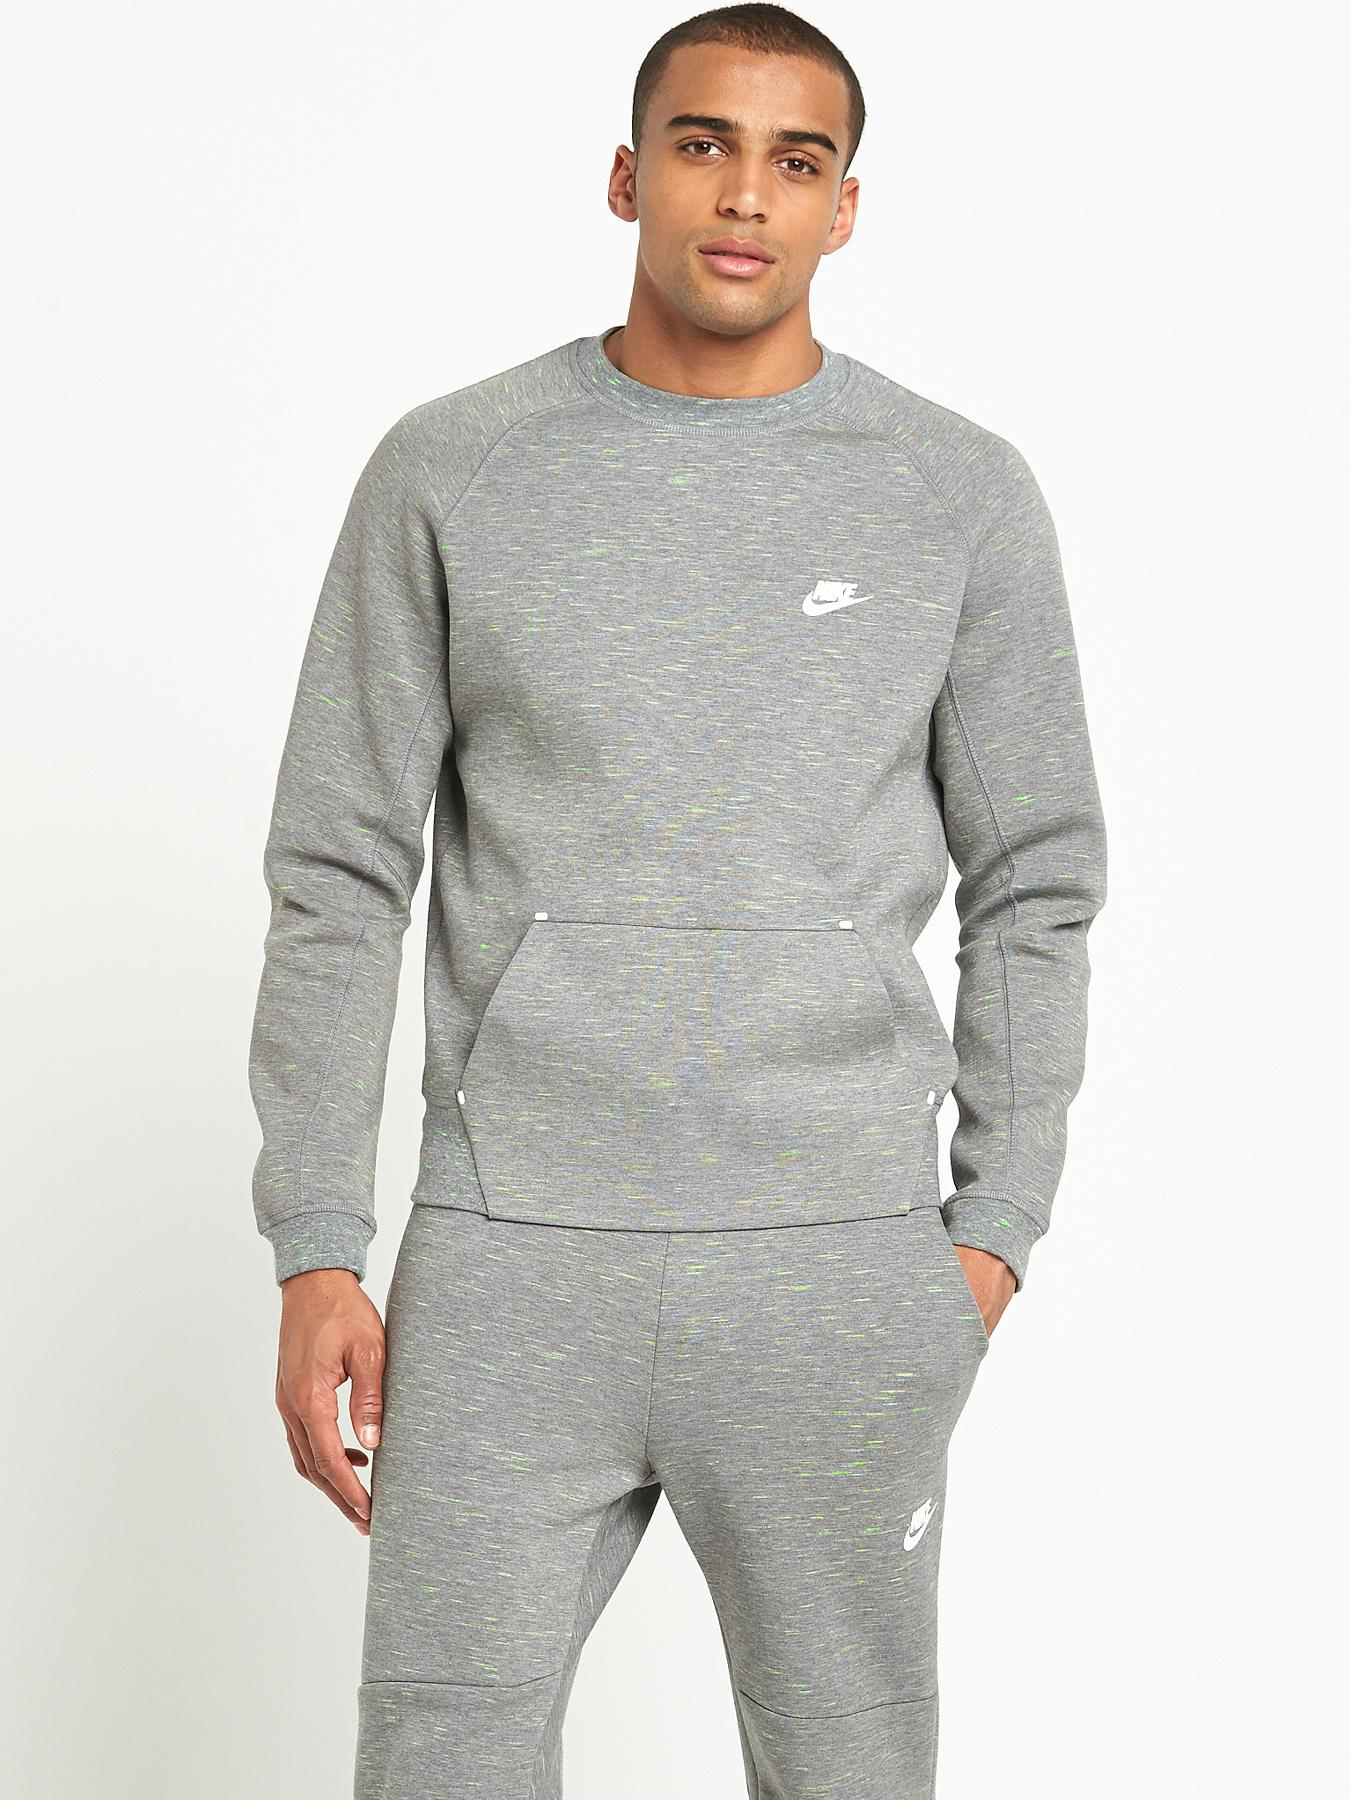 Nike Mens Tech Fleece Crew 1MM Sweatshirt - Grey, Grey